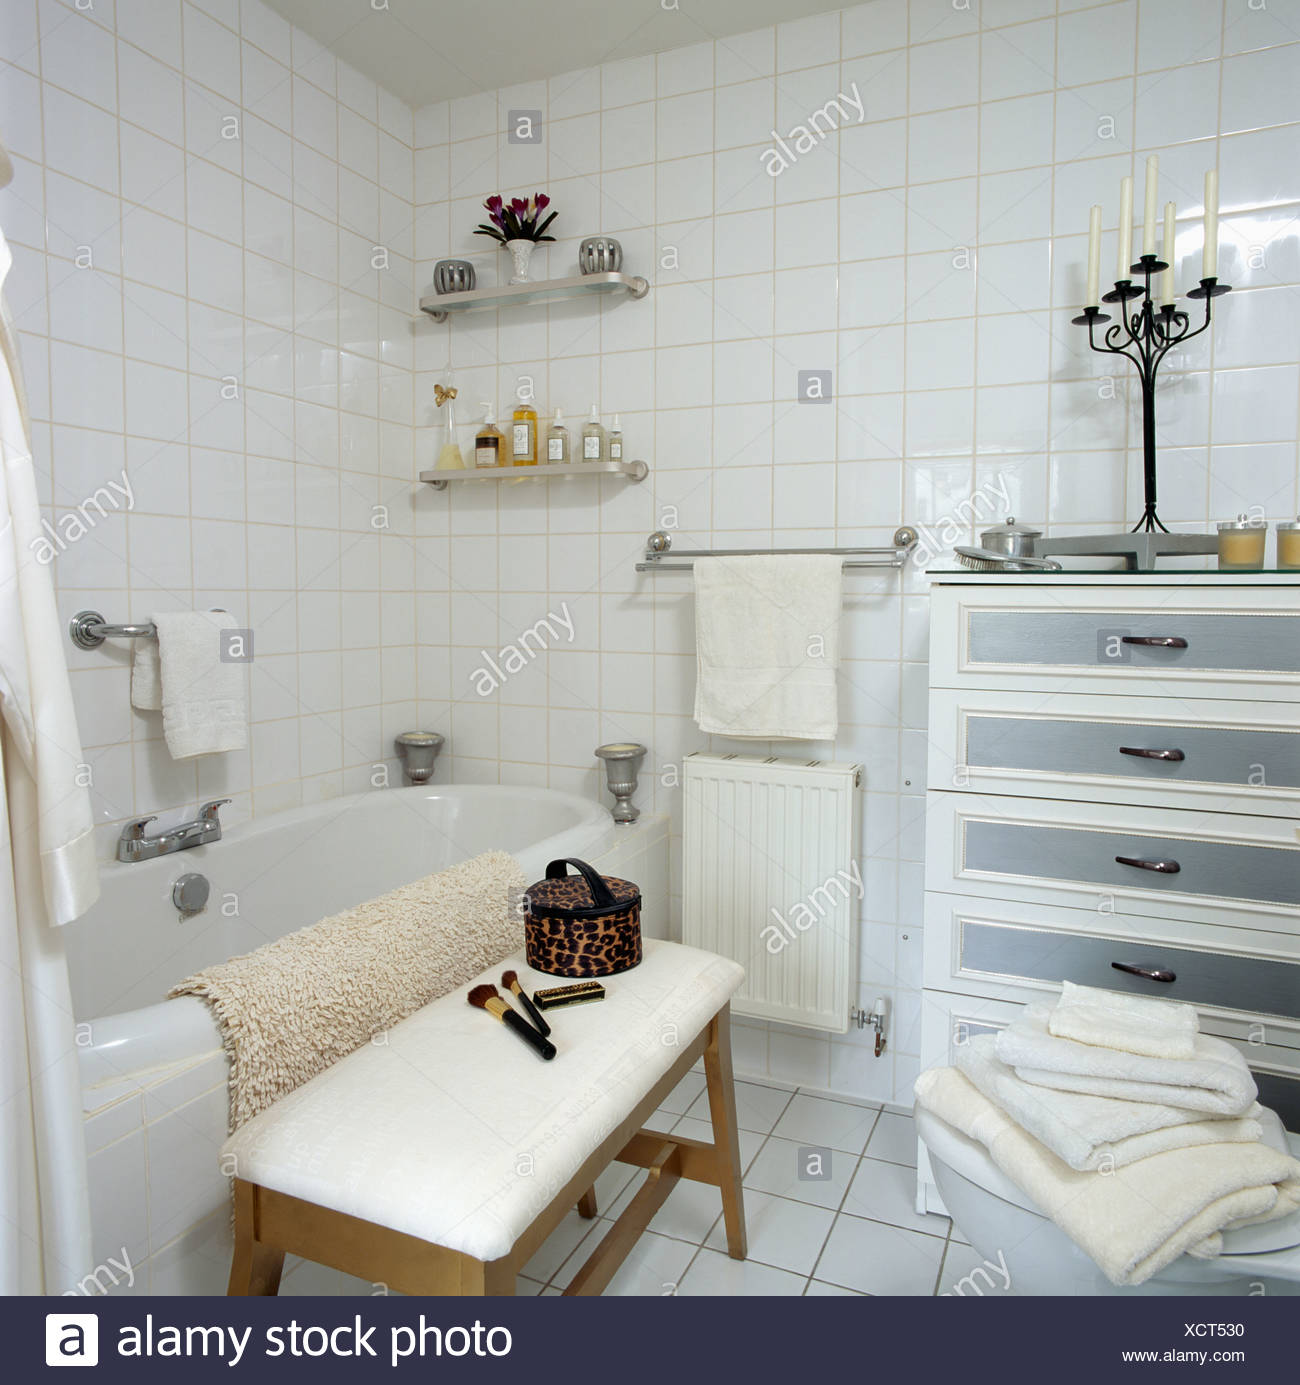 White tiled bathroom with small chest-of-drawers and upholstered ...